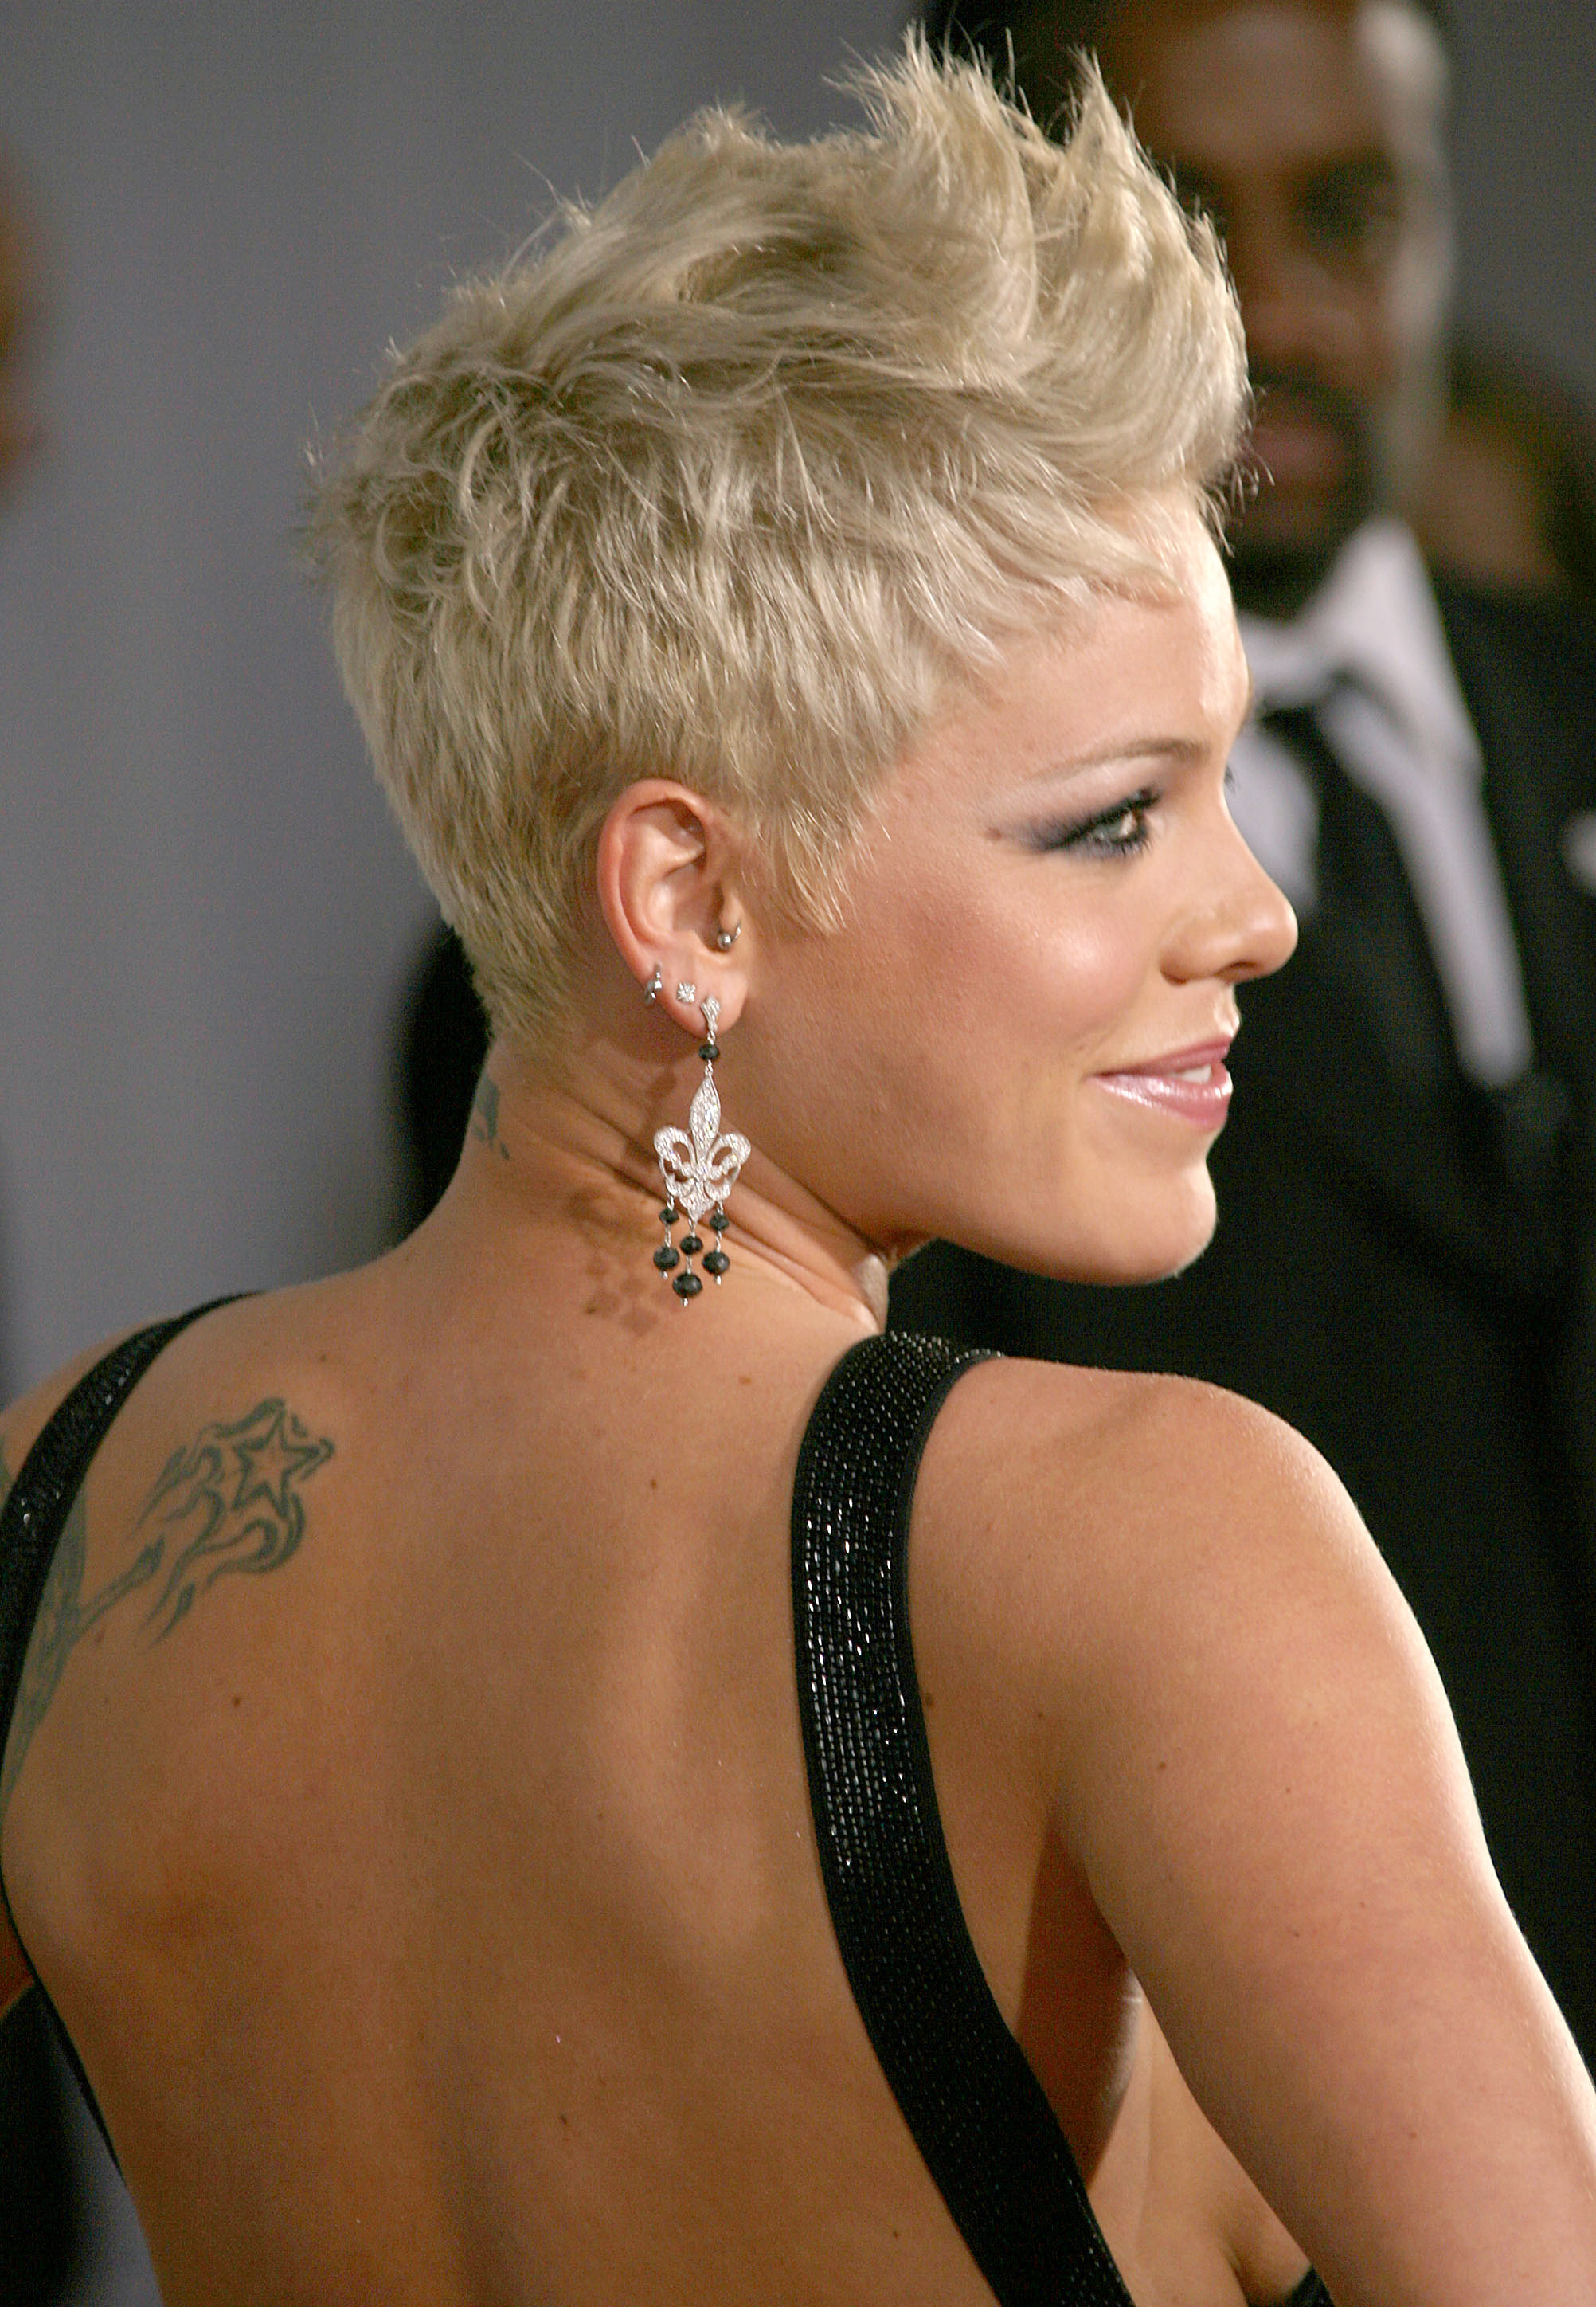 Pink: That White Trash Neighbour With The Pit Bull